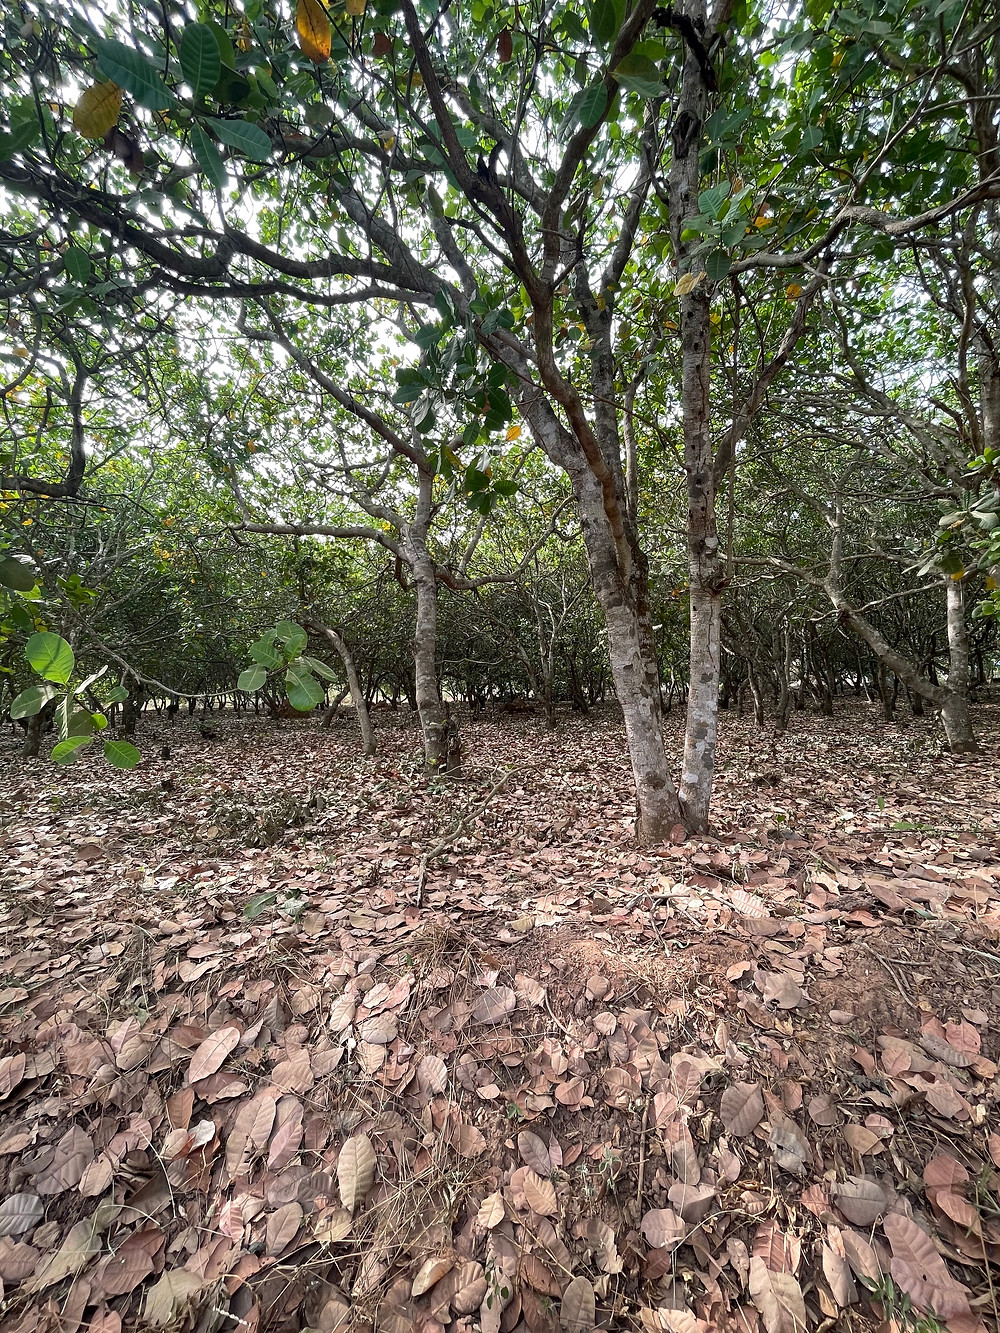 An orchard full of dwarf cashew trees in the off season.